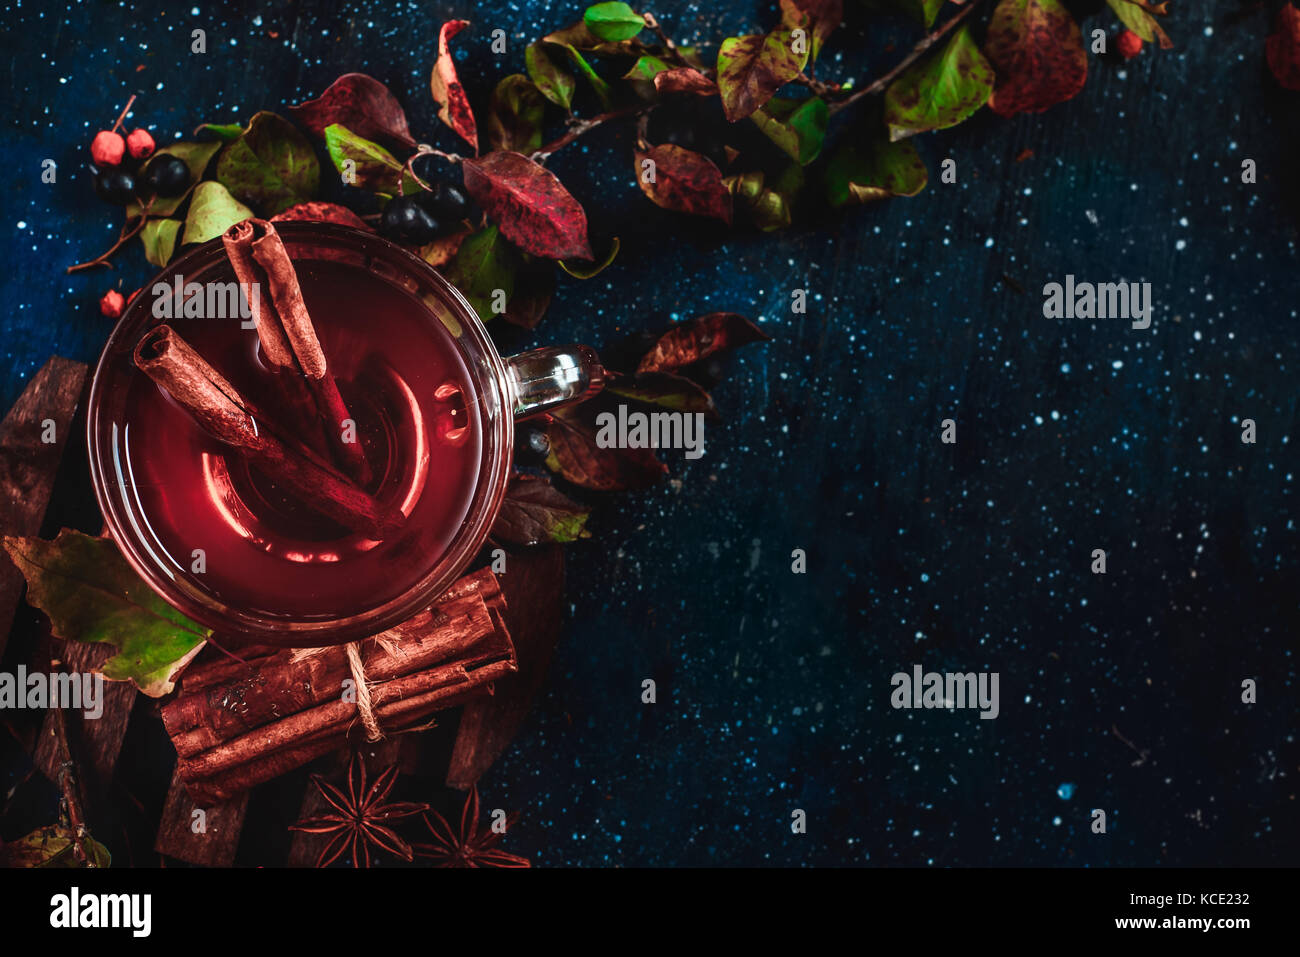 Tea cup with cinnamon on a dark background. Conceptual stylized food still life with autumn leaves and berries. - Stock Image